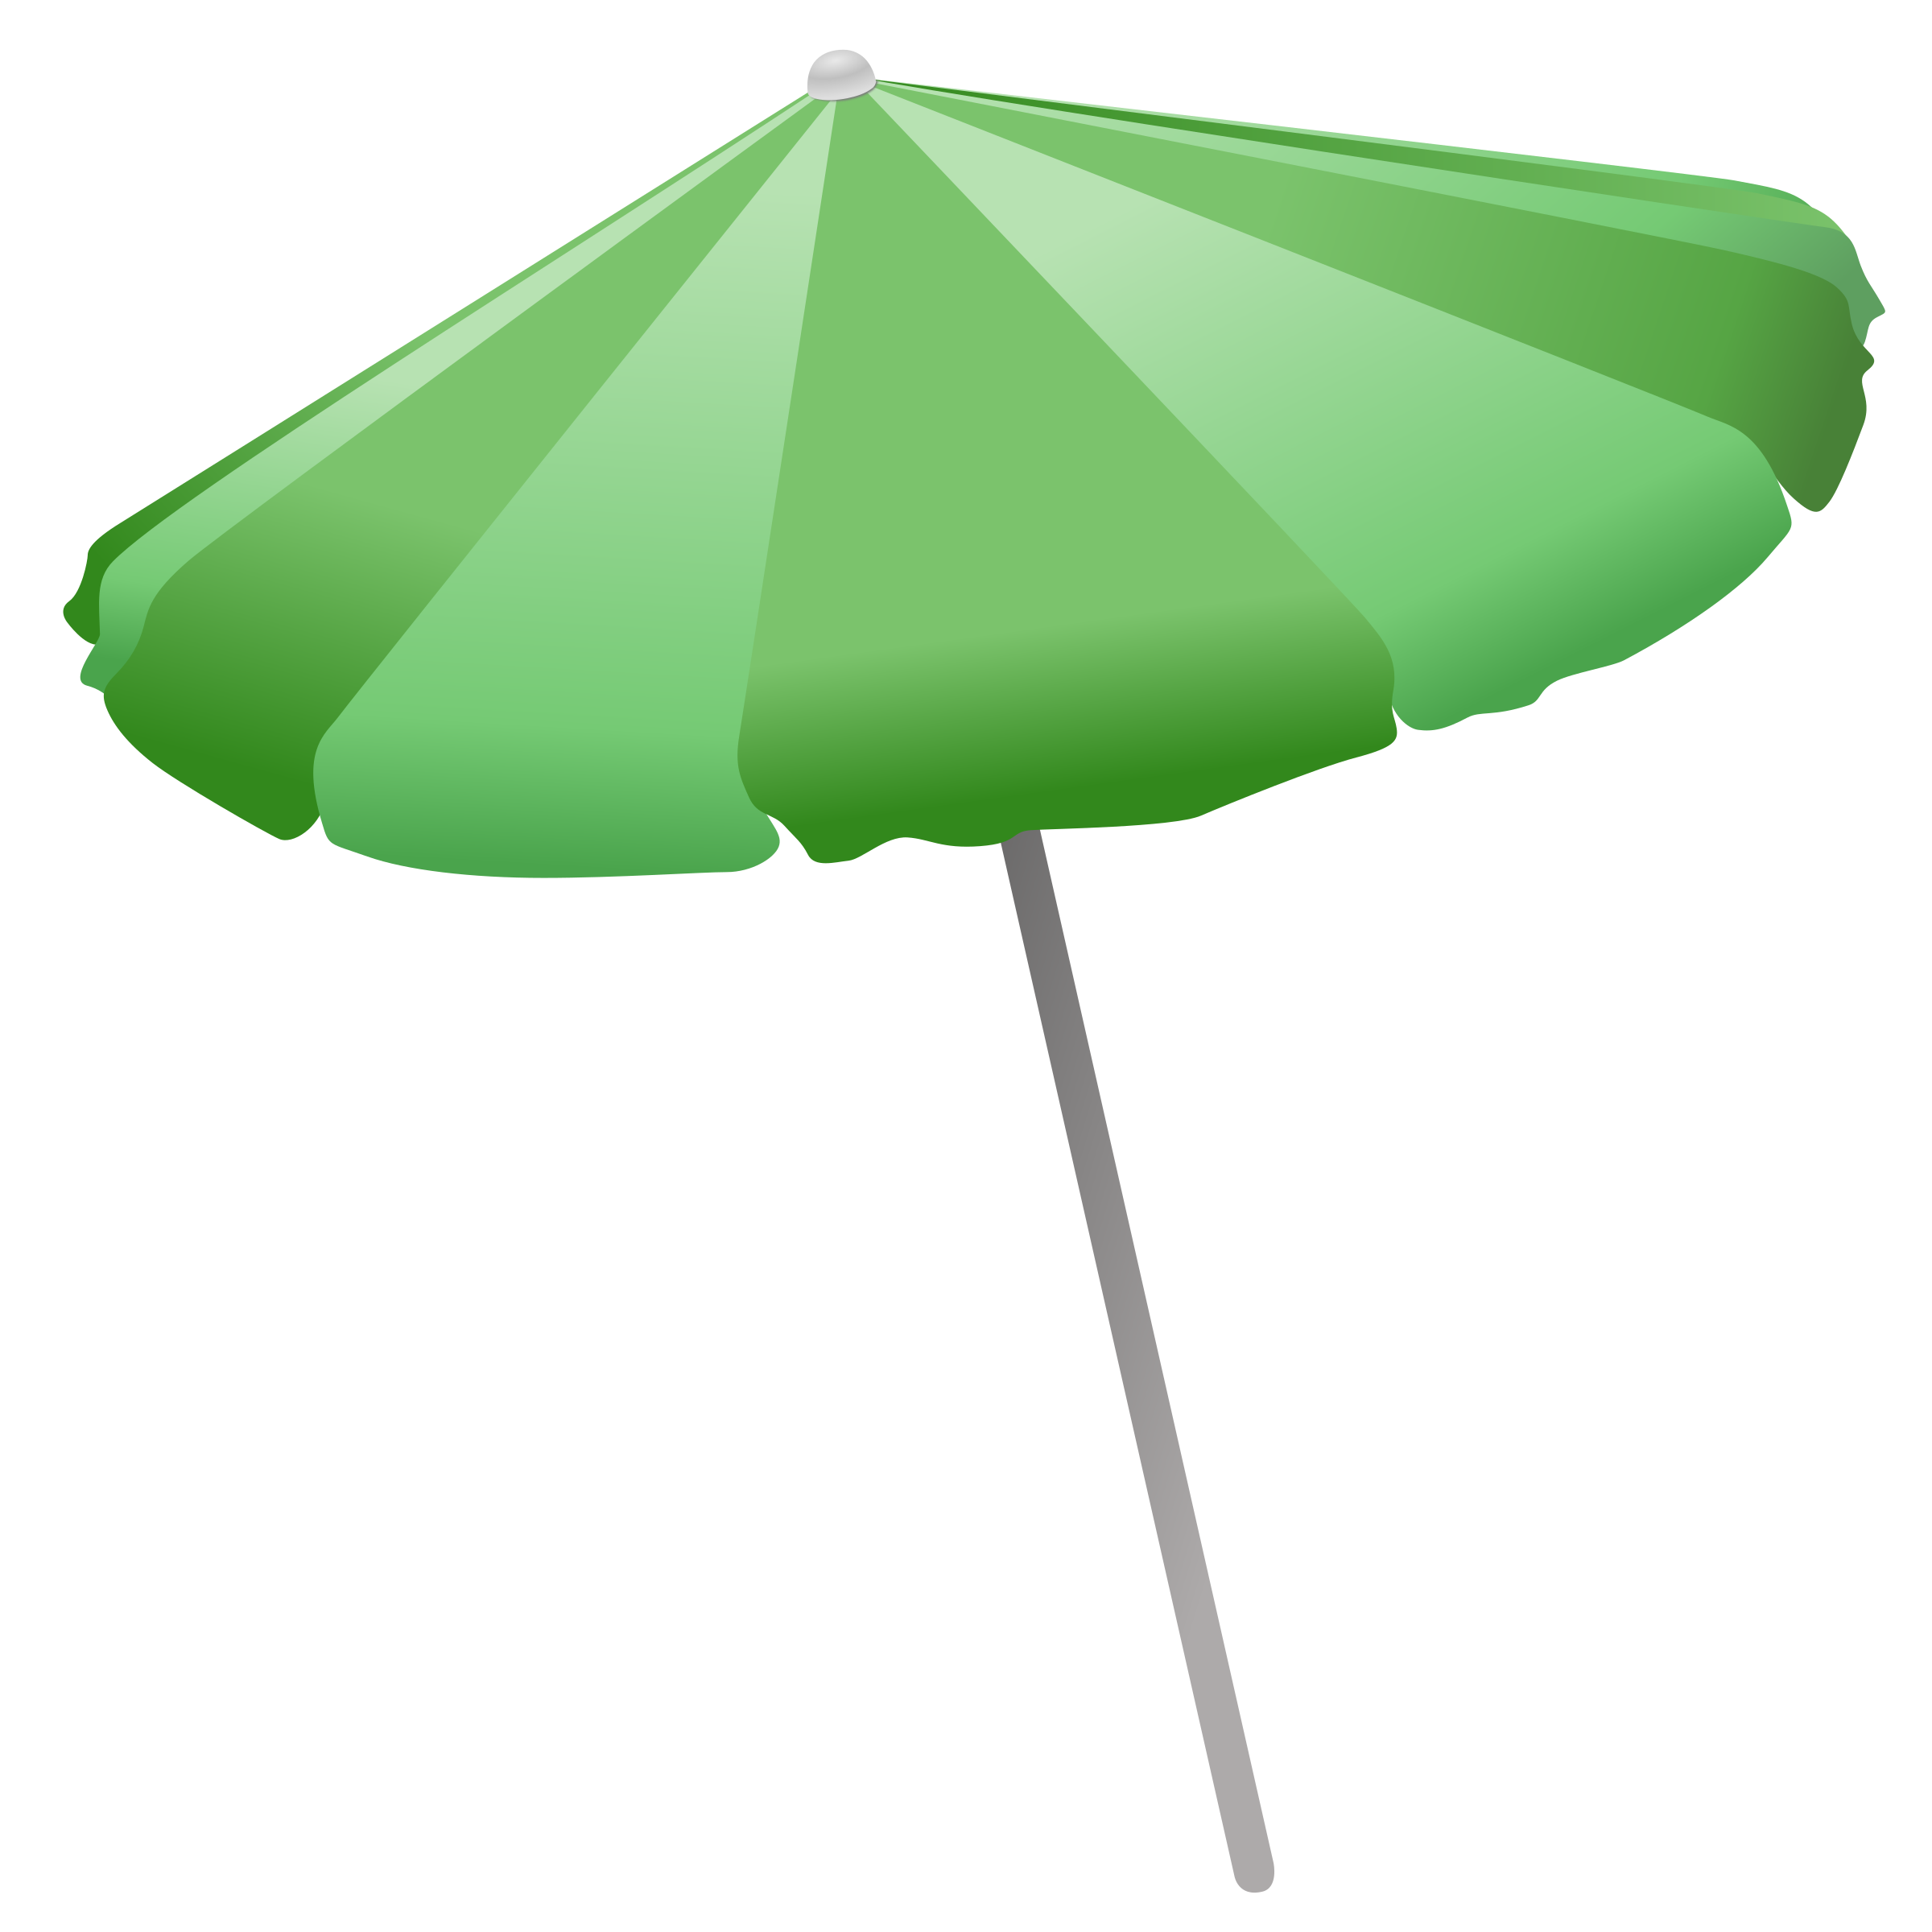 Clipart umbrella simple umbrella. Beach big image png